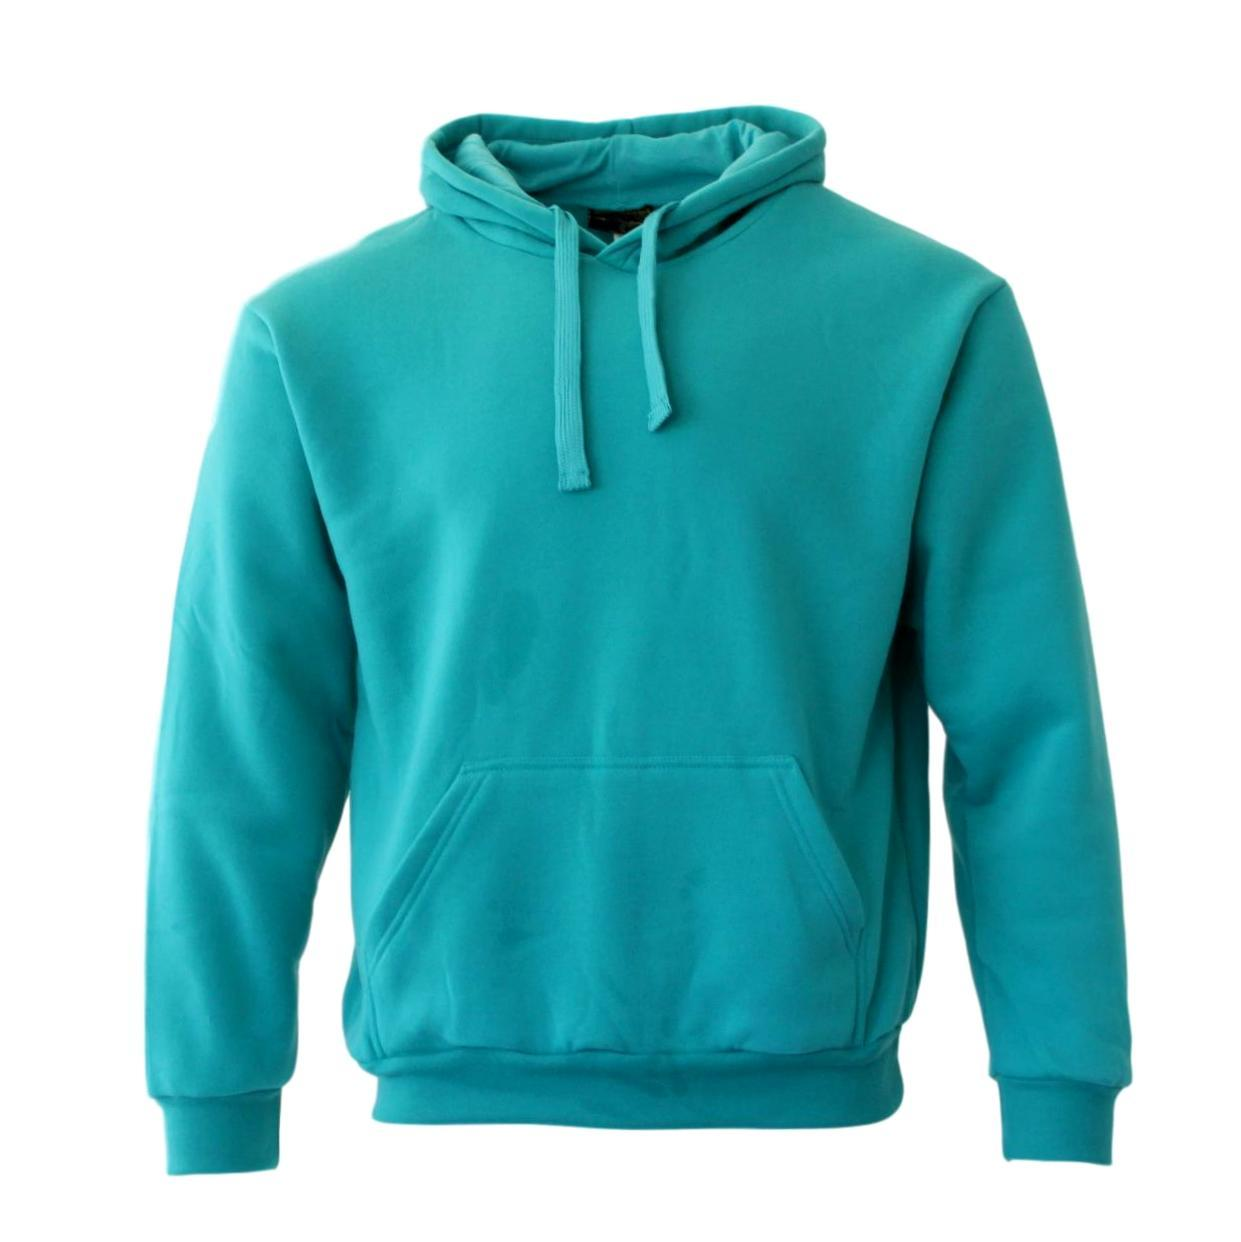 Adult-Men-039-s-Unisex-Basic-Plain-Hoodie-Jumper-Pullover-Sweater-Sweatshirt-XS-5XL thumbnail 53